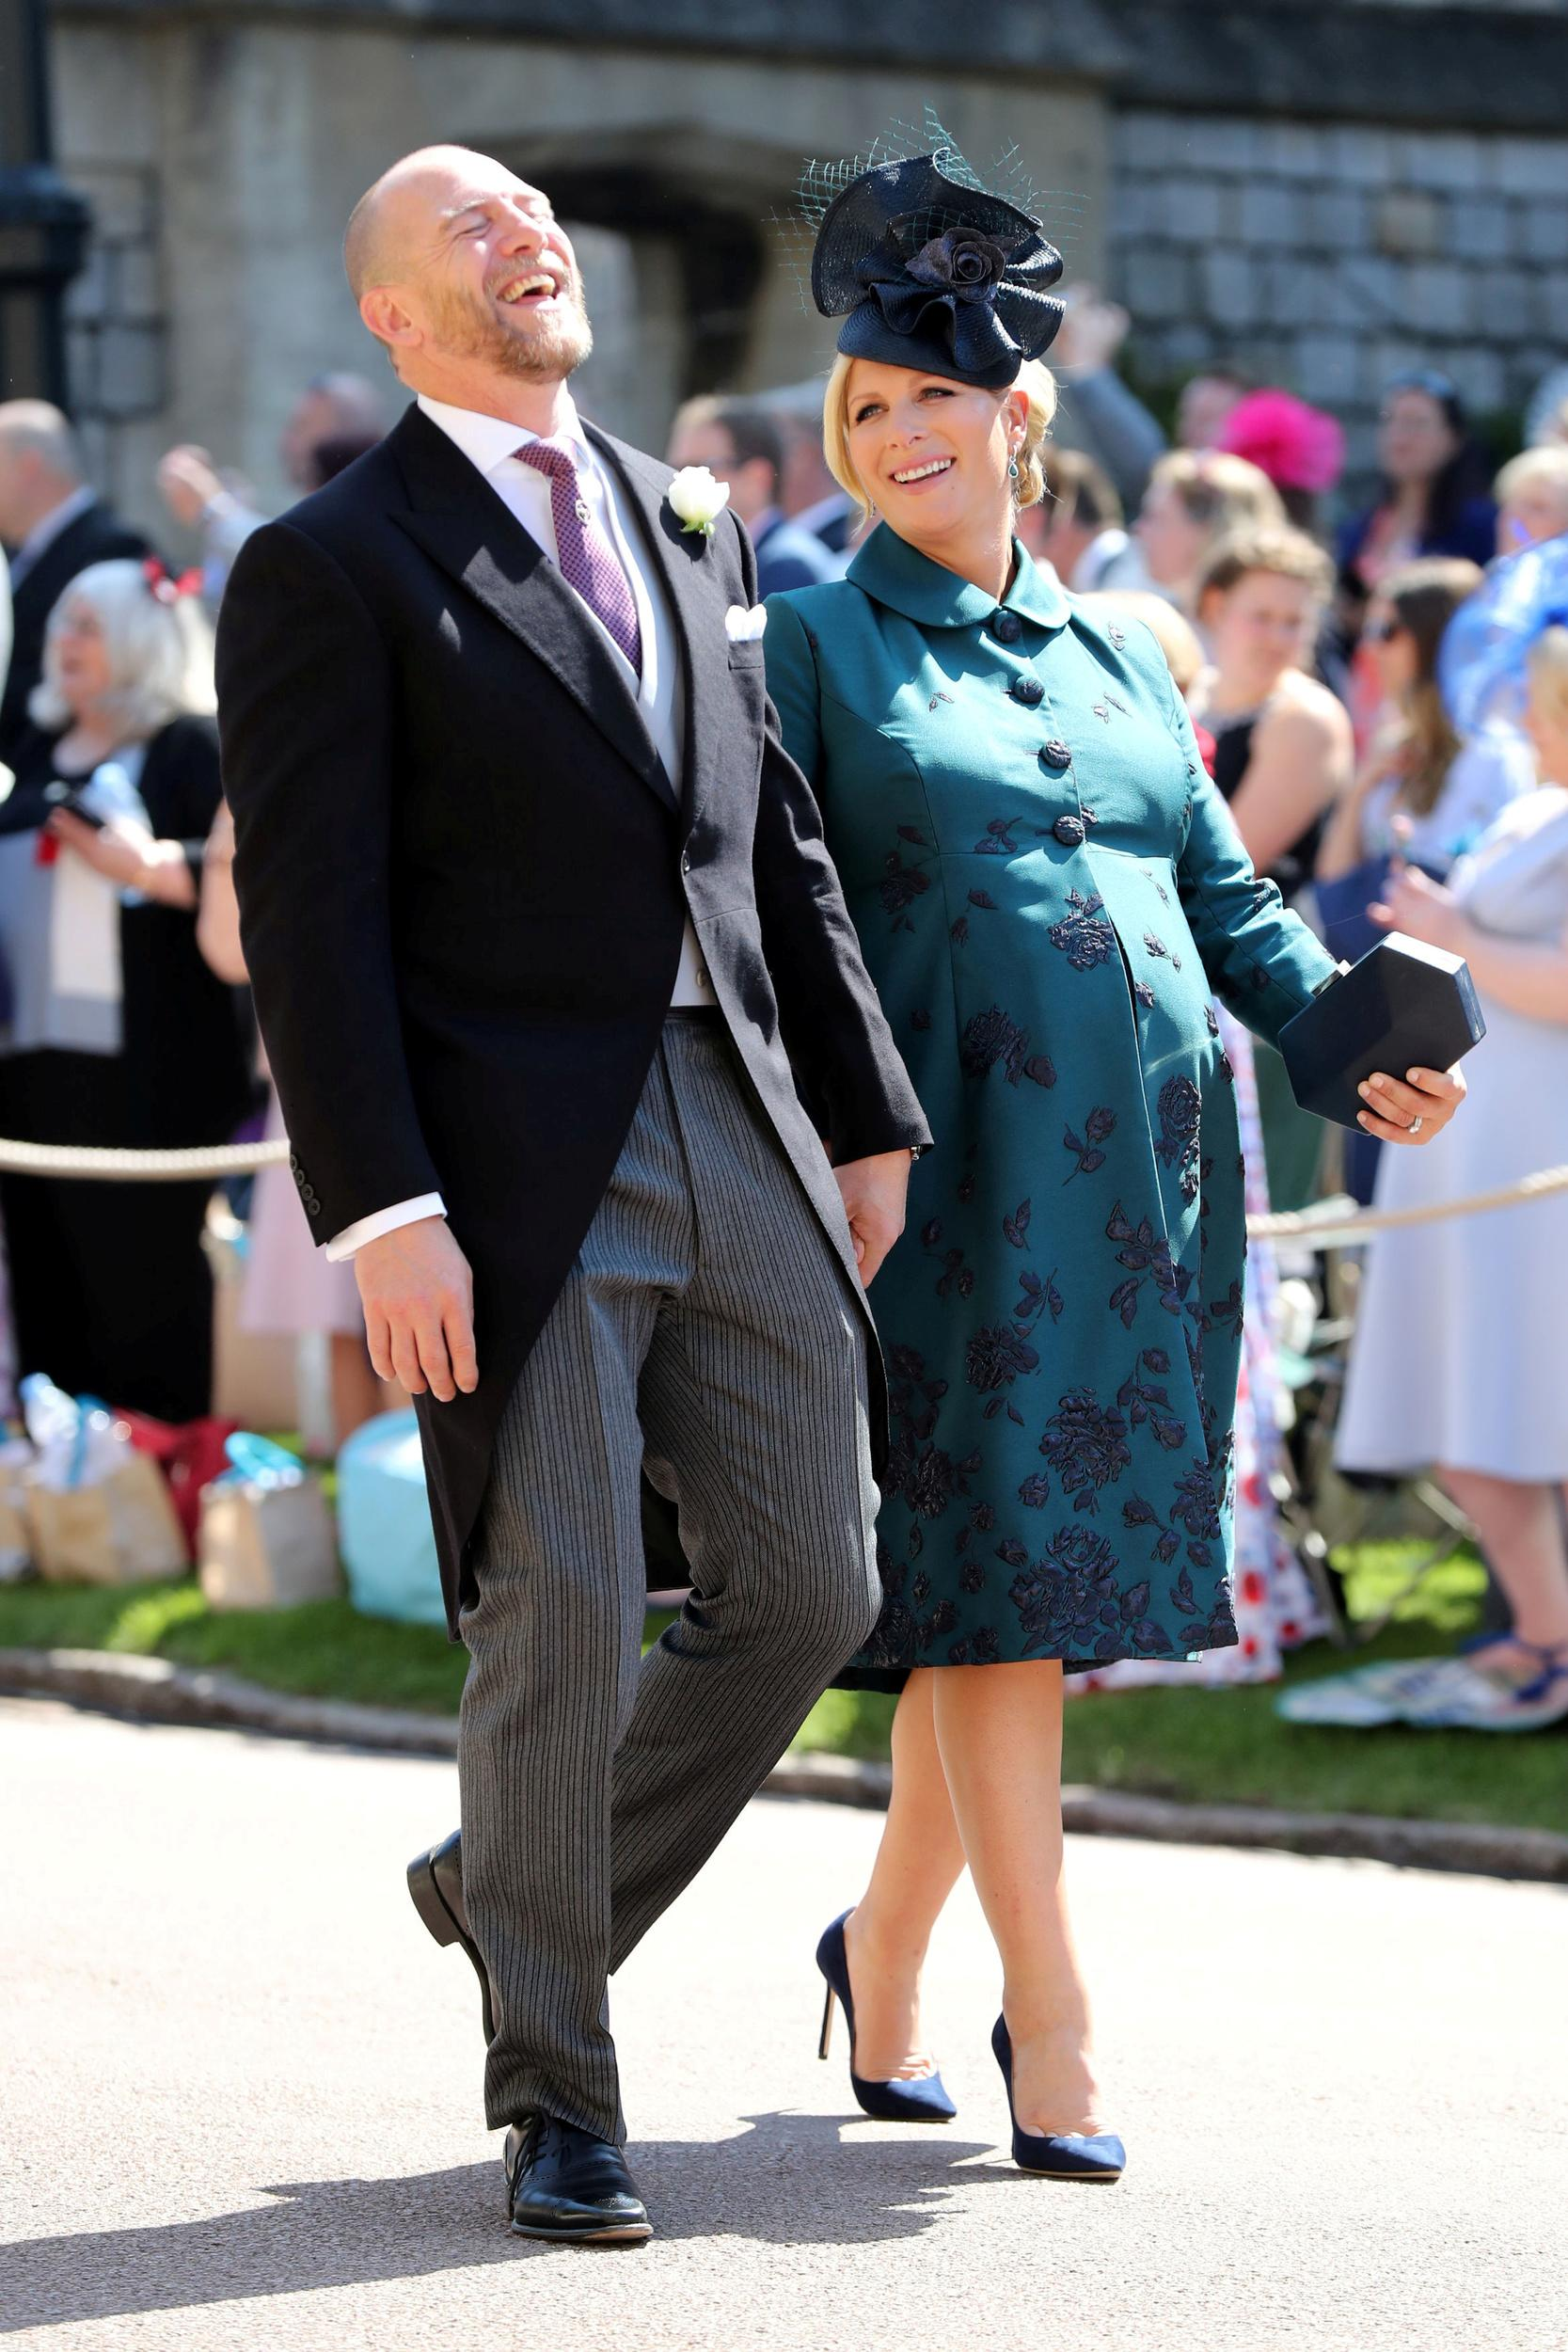 Mike Tindall and Zara Tindall arrives at St George's Chapel at Windsor Castle for the wedding of Meghan Markle and Prince Harry, in Windsor, Britain May 19, 2018.  Gareth Fuller/Pool via REUTERS